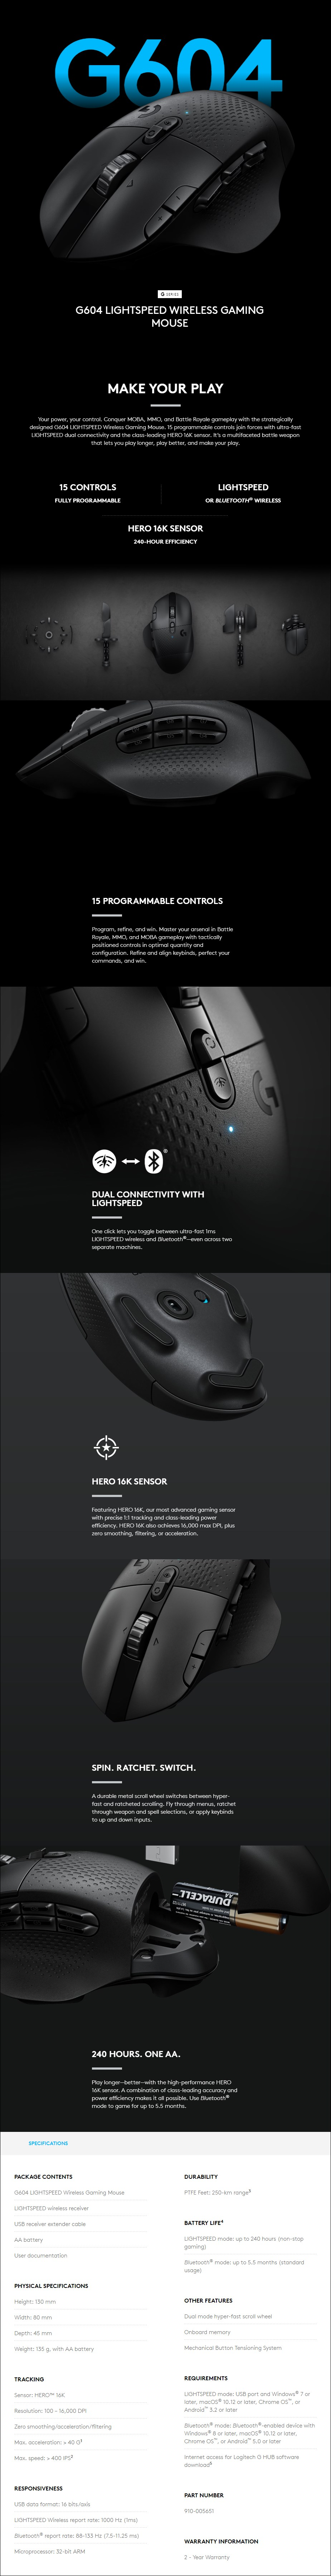 Logitech G604 LIGHTSPEED Wireless Gaming Mouse - Overview 1